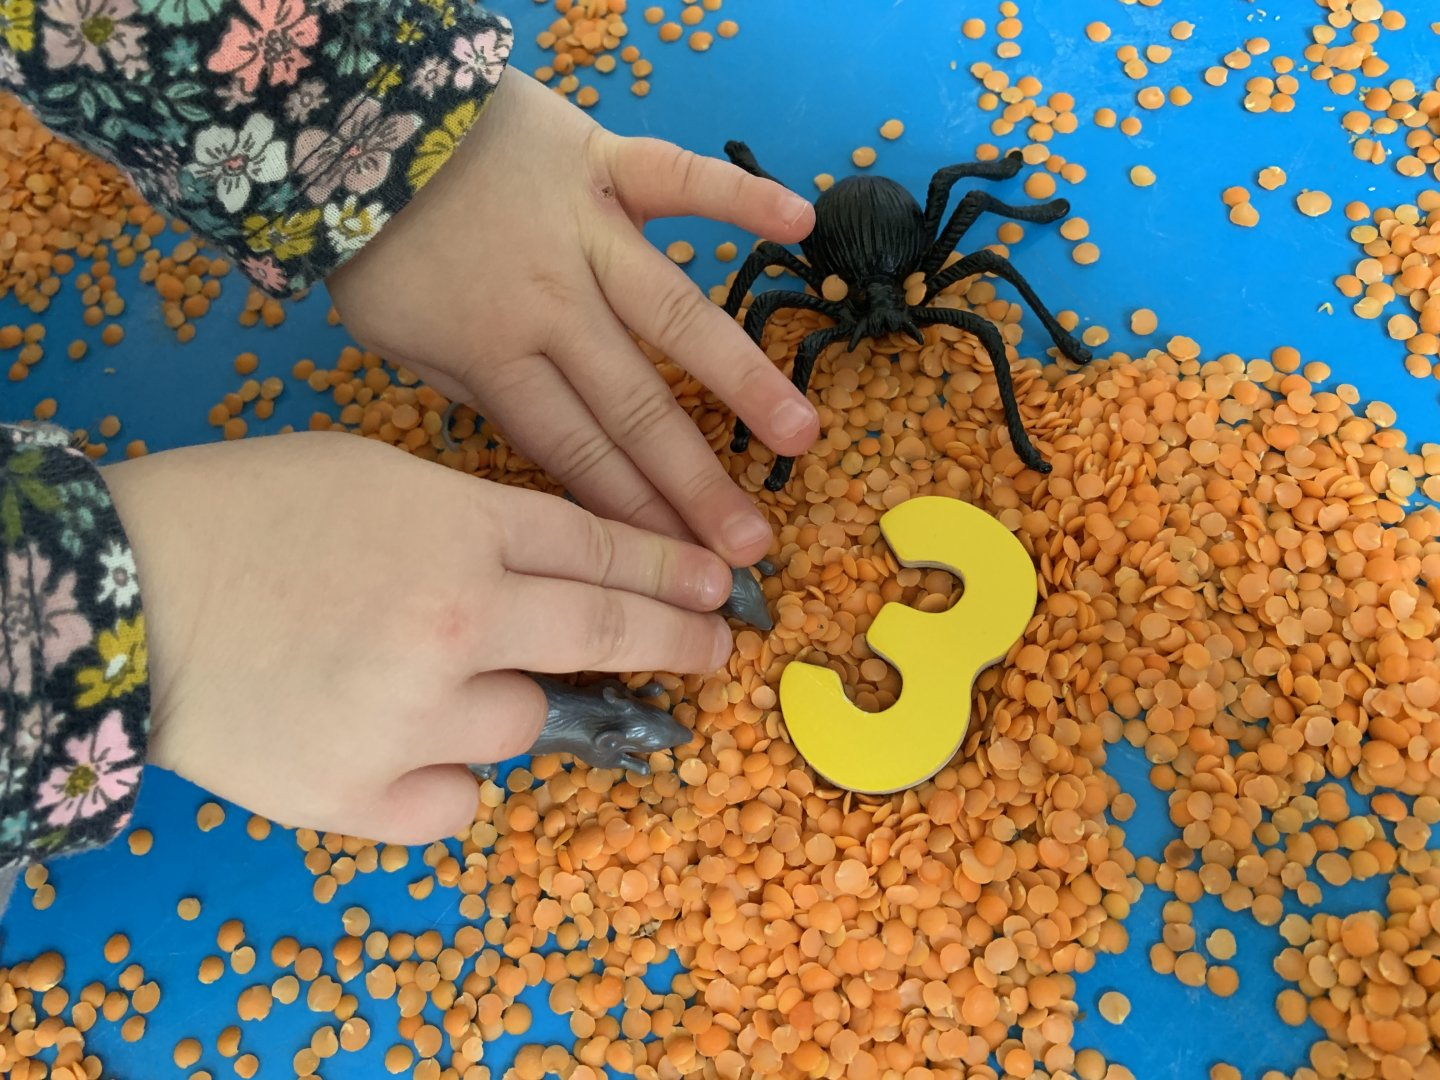 A close out of M's hands arranging two silver plastic mice and a large black plastic spider next to a yellow number three, on a bed of orange split lentils.